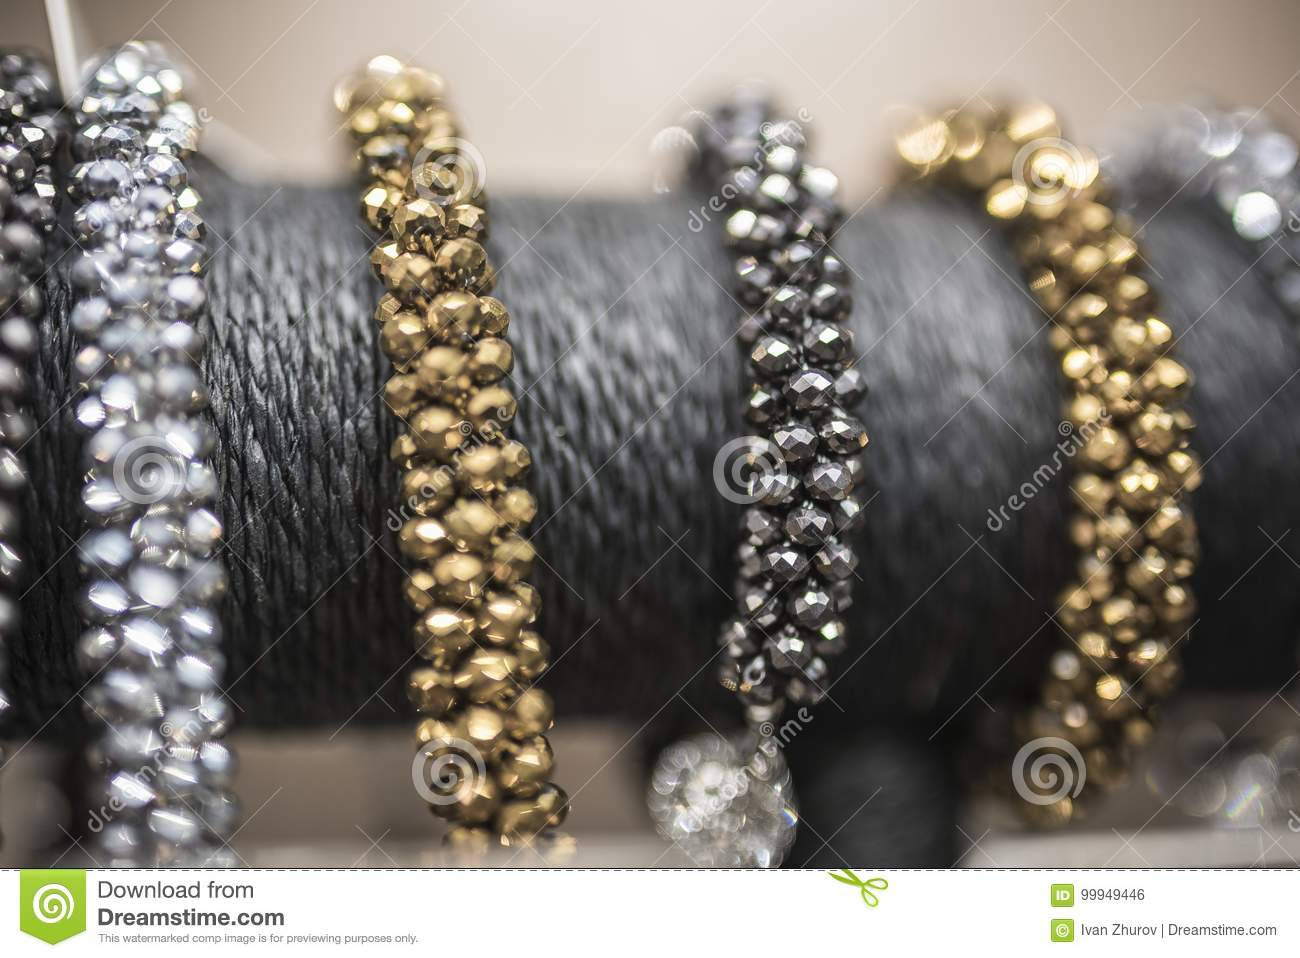 Silver and gold bracelets in defocus